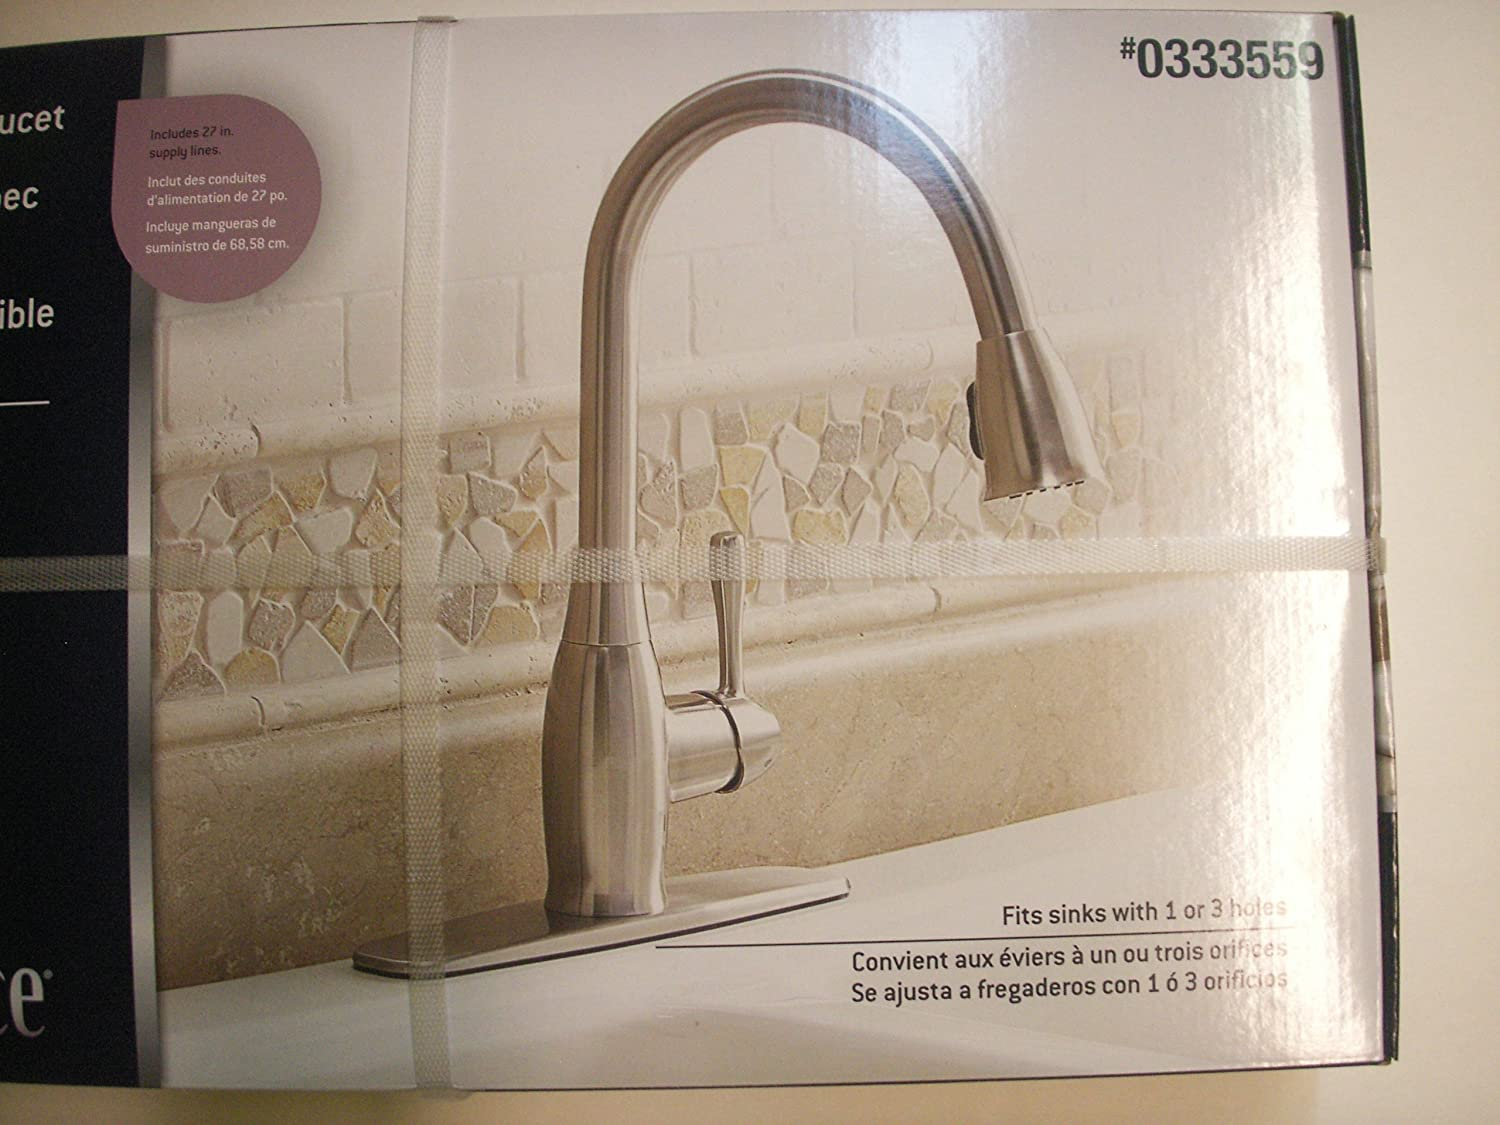 Pull-Down Kitchen Faucet #0333559 BOX. - Touch On Bathroom Sink Faucets - Amazon.com